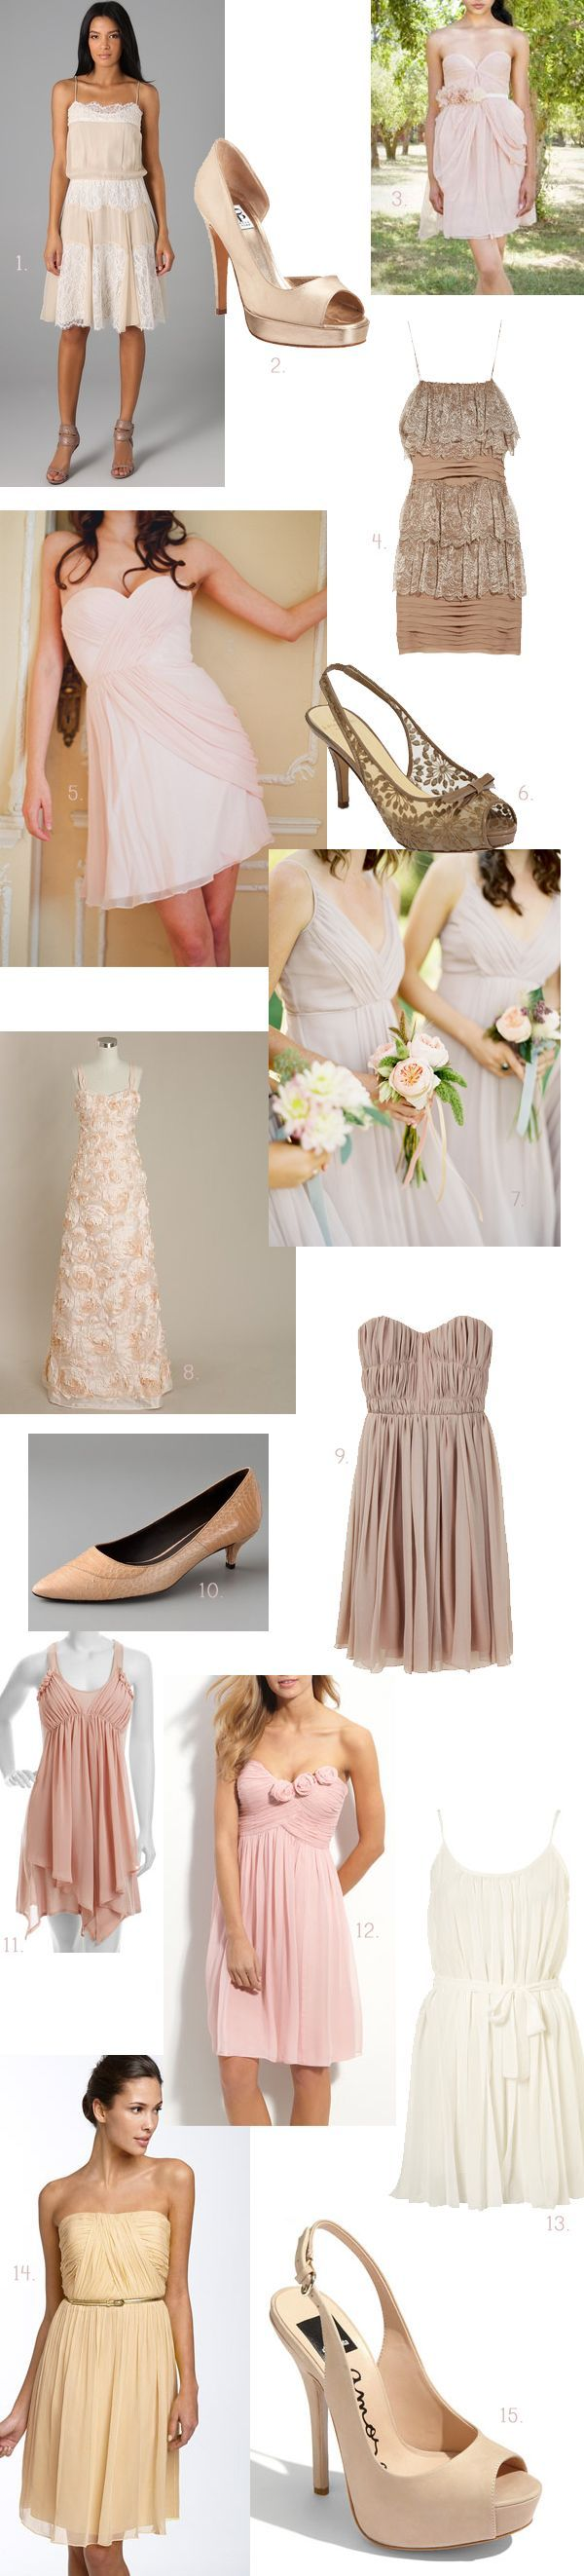 Blush Wedding Round Up